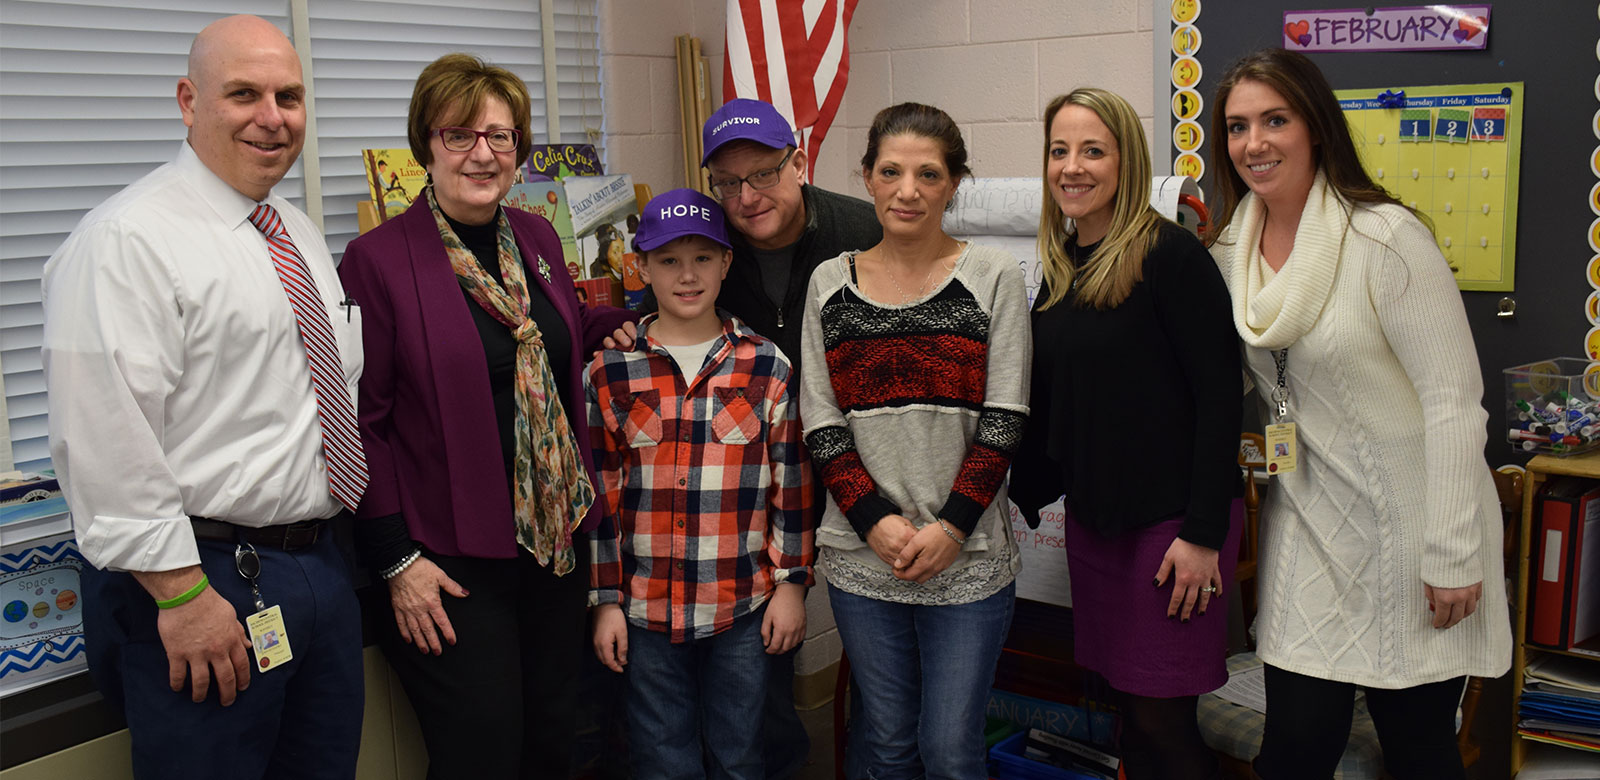 Waverly Student Organizes Special Fundraiser